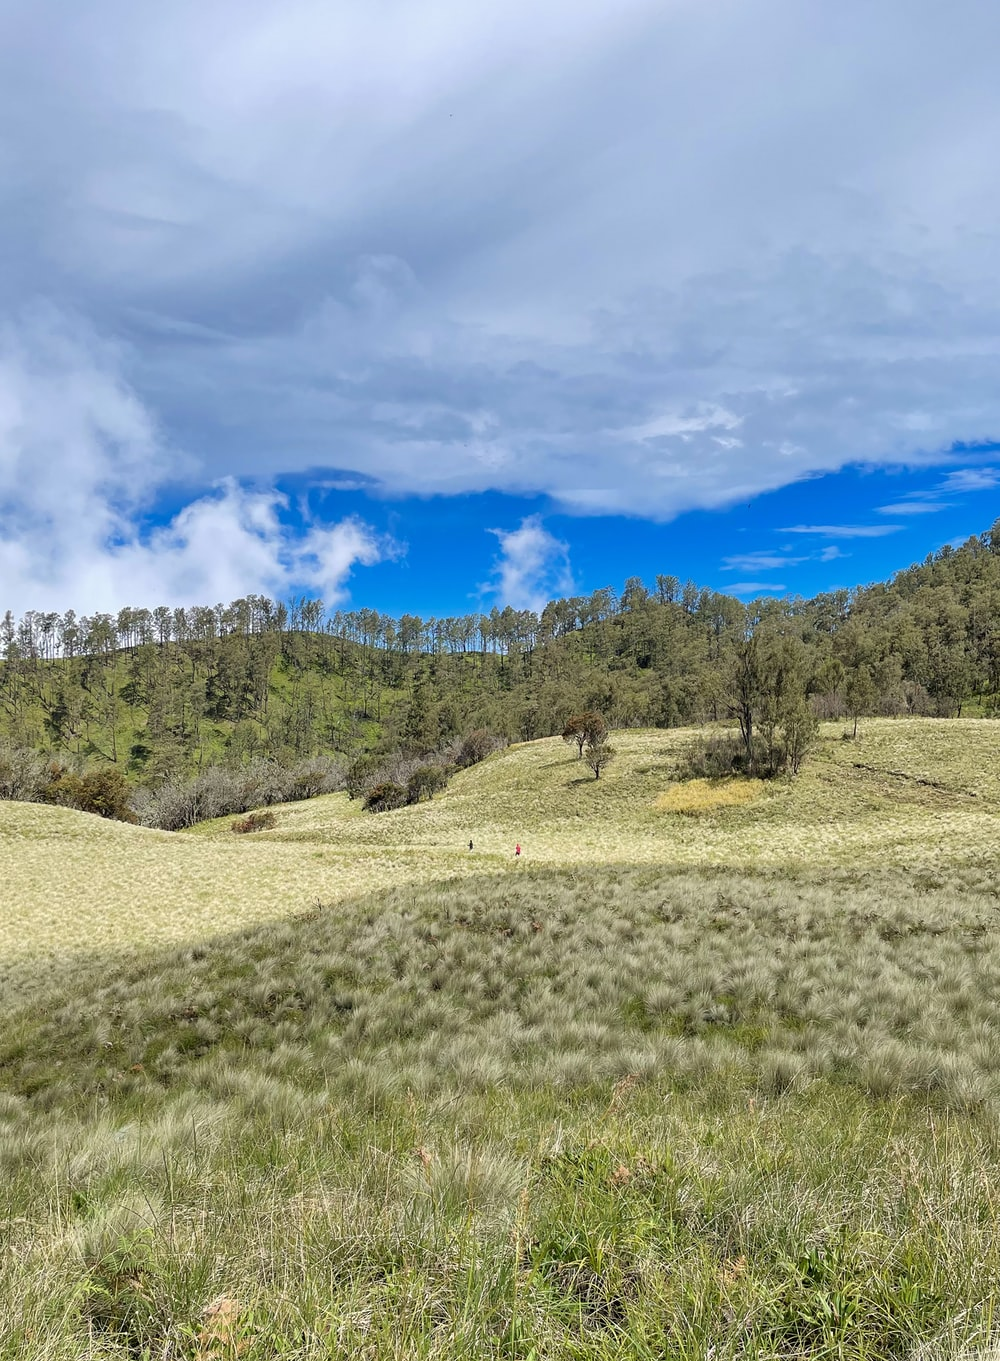 green trees on hill under blue sky and white clouds during daytime